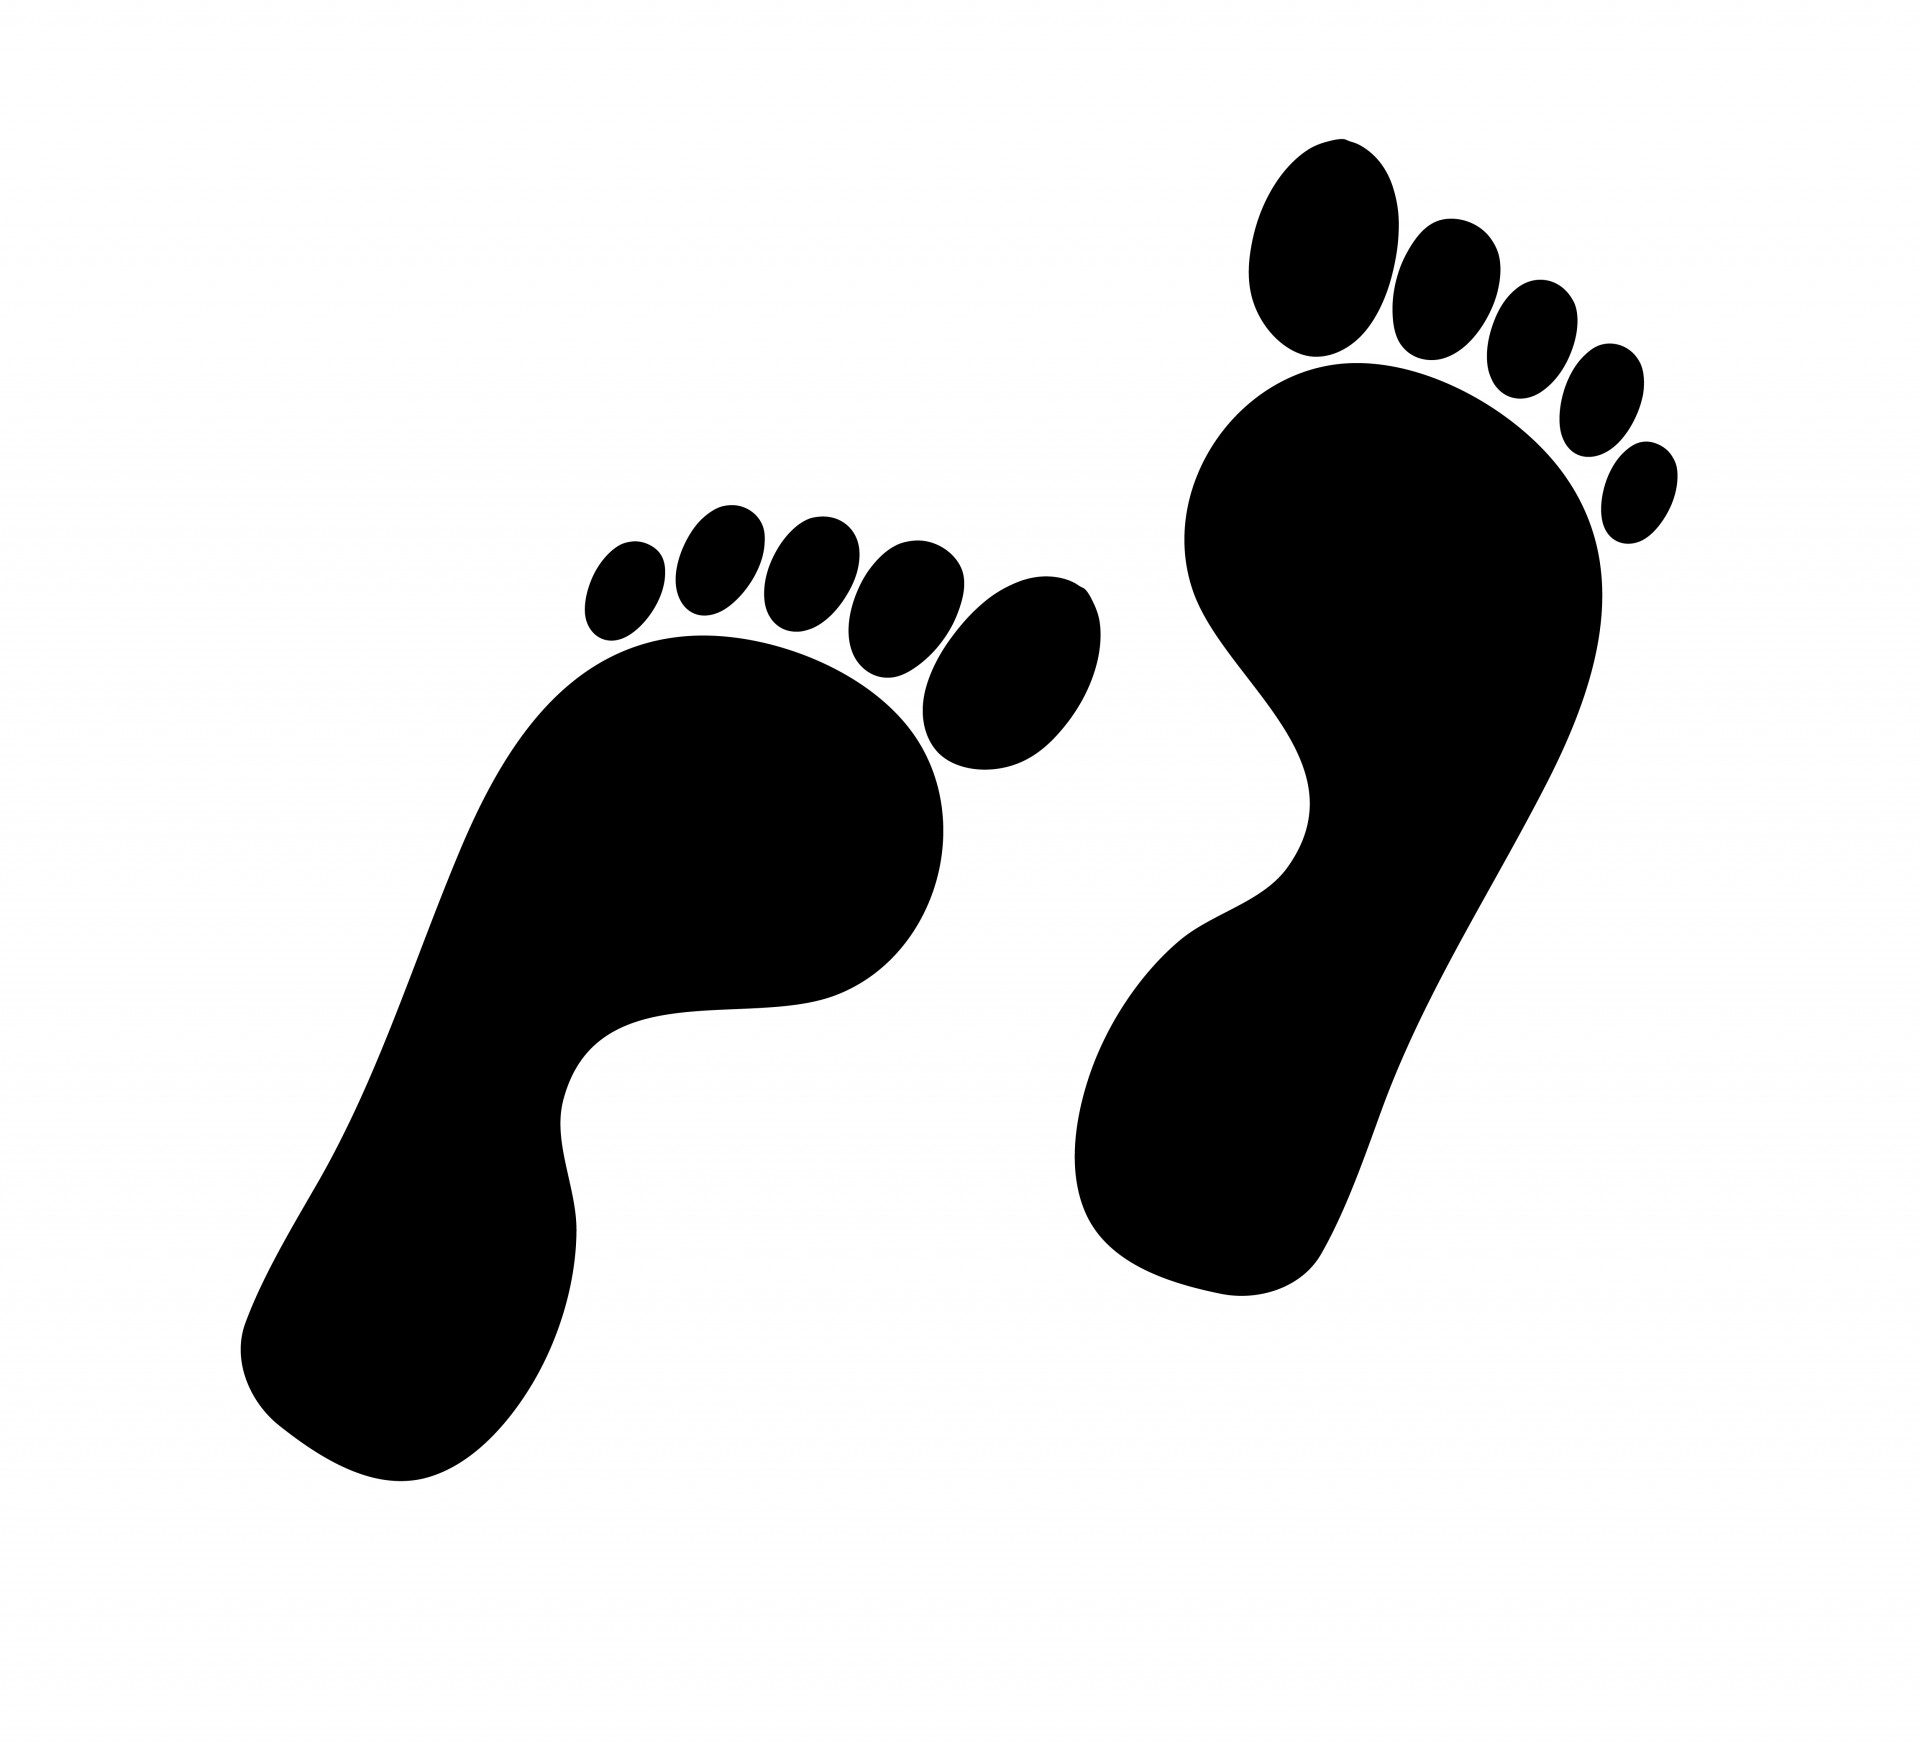 Footprints Silhouette Clipart Free Stock-Footprints Silhouette Clipart Free Stock Photo Hd Public Domain-6